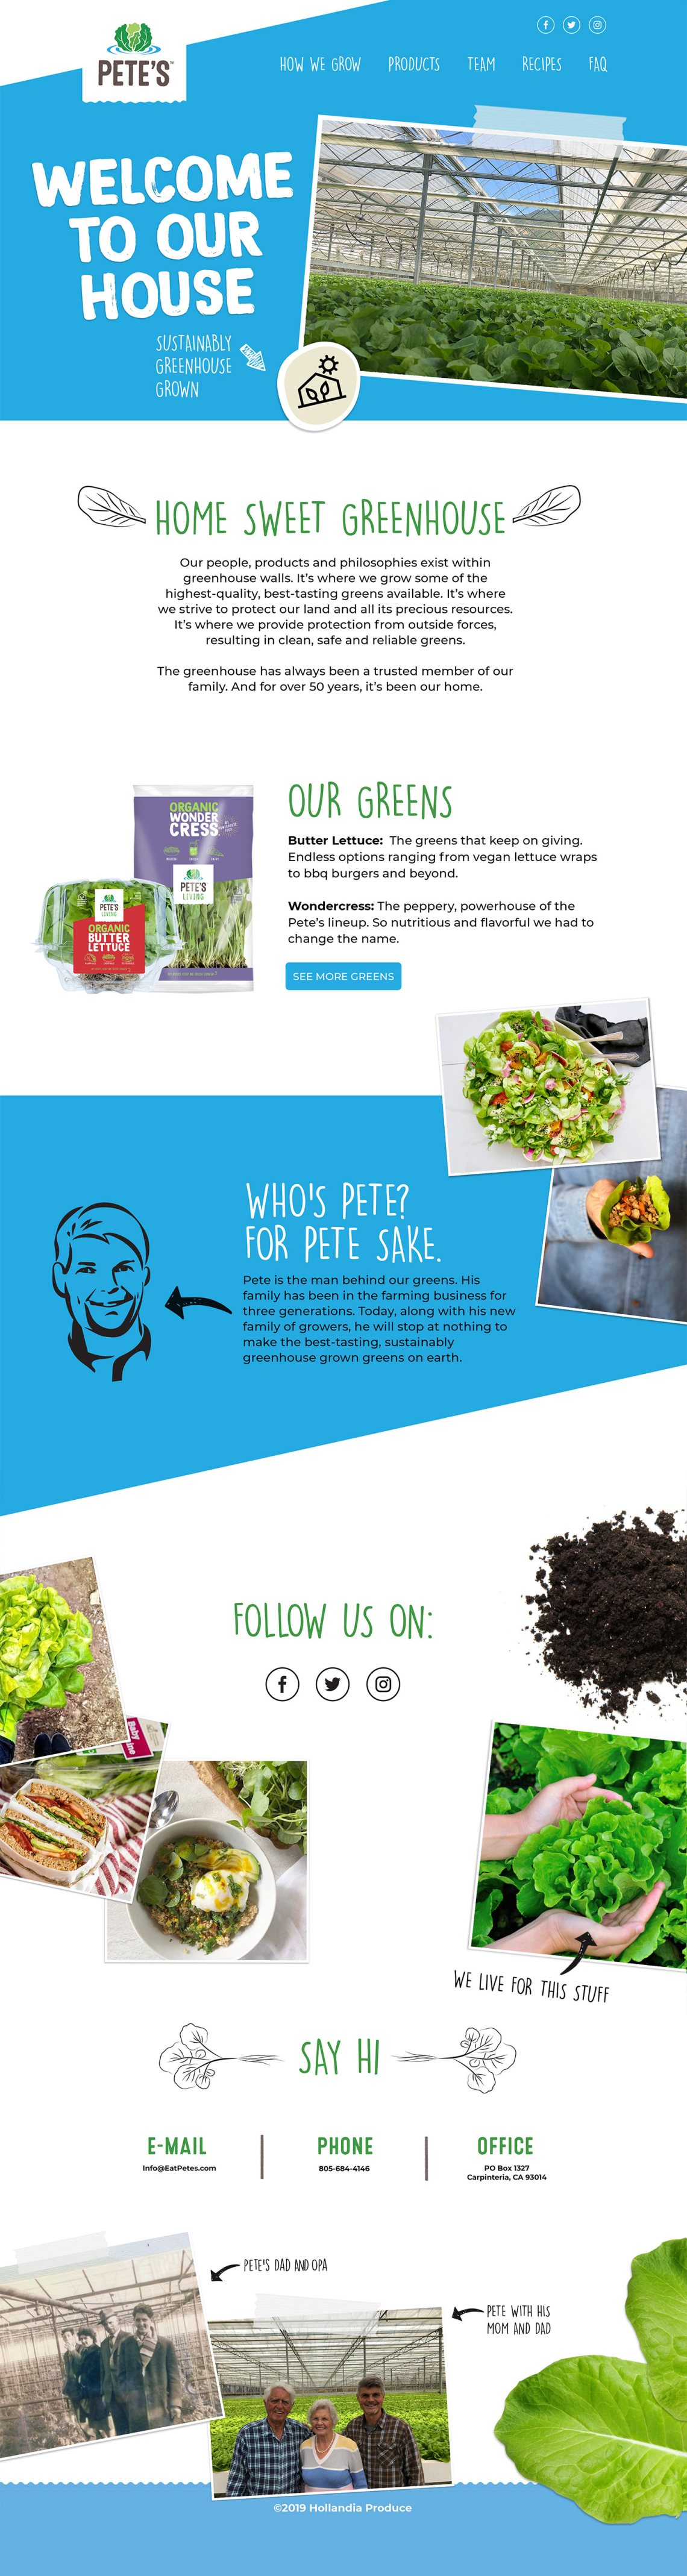 Pete's Living - eatpetes.com - Website Redesign Santa Barbara CA